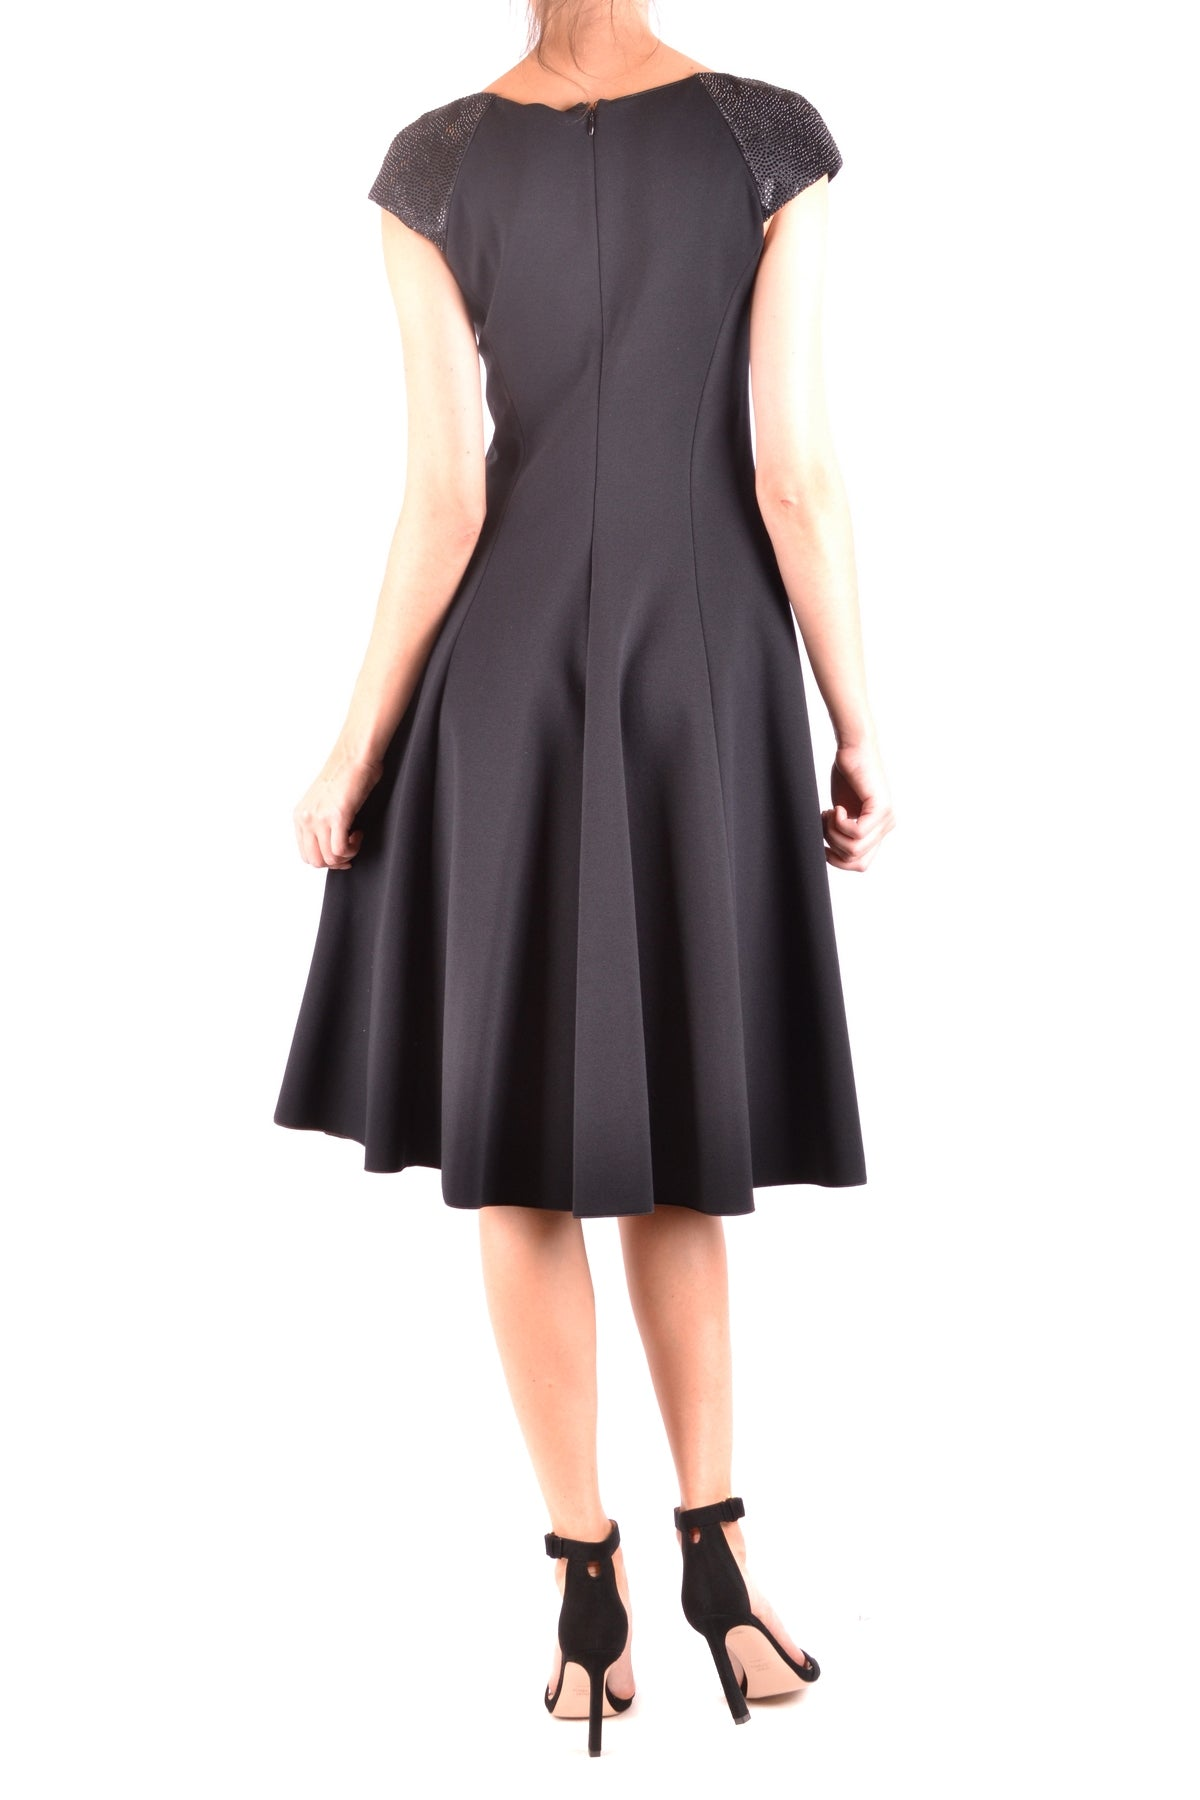 Dress Armani Collezioni-Dress - WOMAN-Product Details Season: Fall / WinterTerms: New With LabelMain Color: BlackGender: WomanMade In: ItalyManufacturer Part Number: 6Yma54 MjfazSize: ItYear: 2018Clothing Type: TaglieurComposition: Elastane 6%, Polyamide 17%, Viscose 77%-Keyomi-Sook